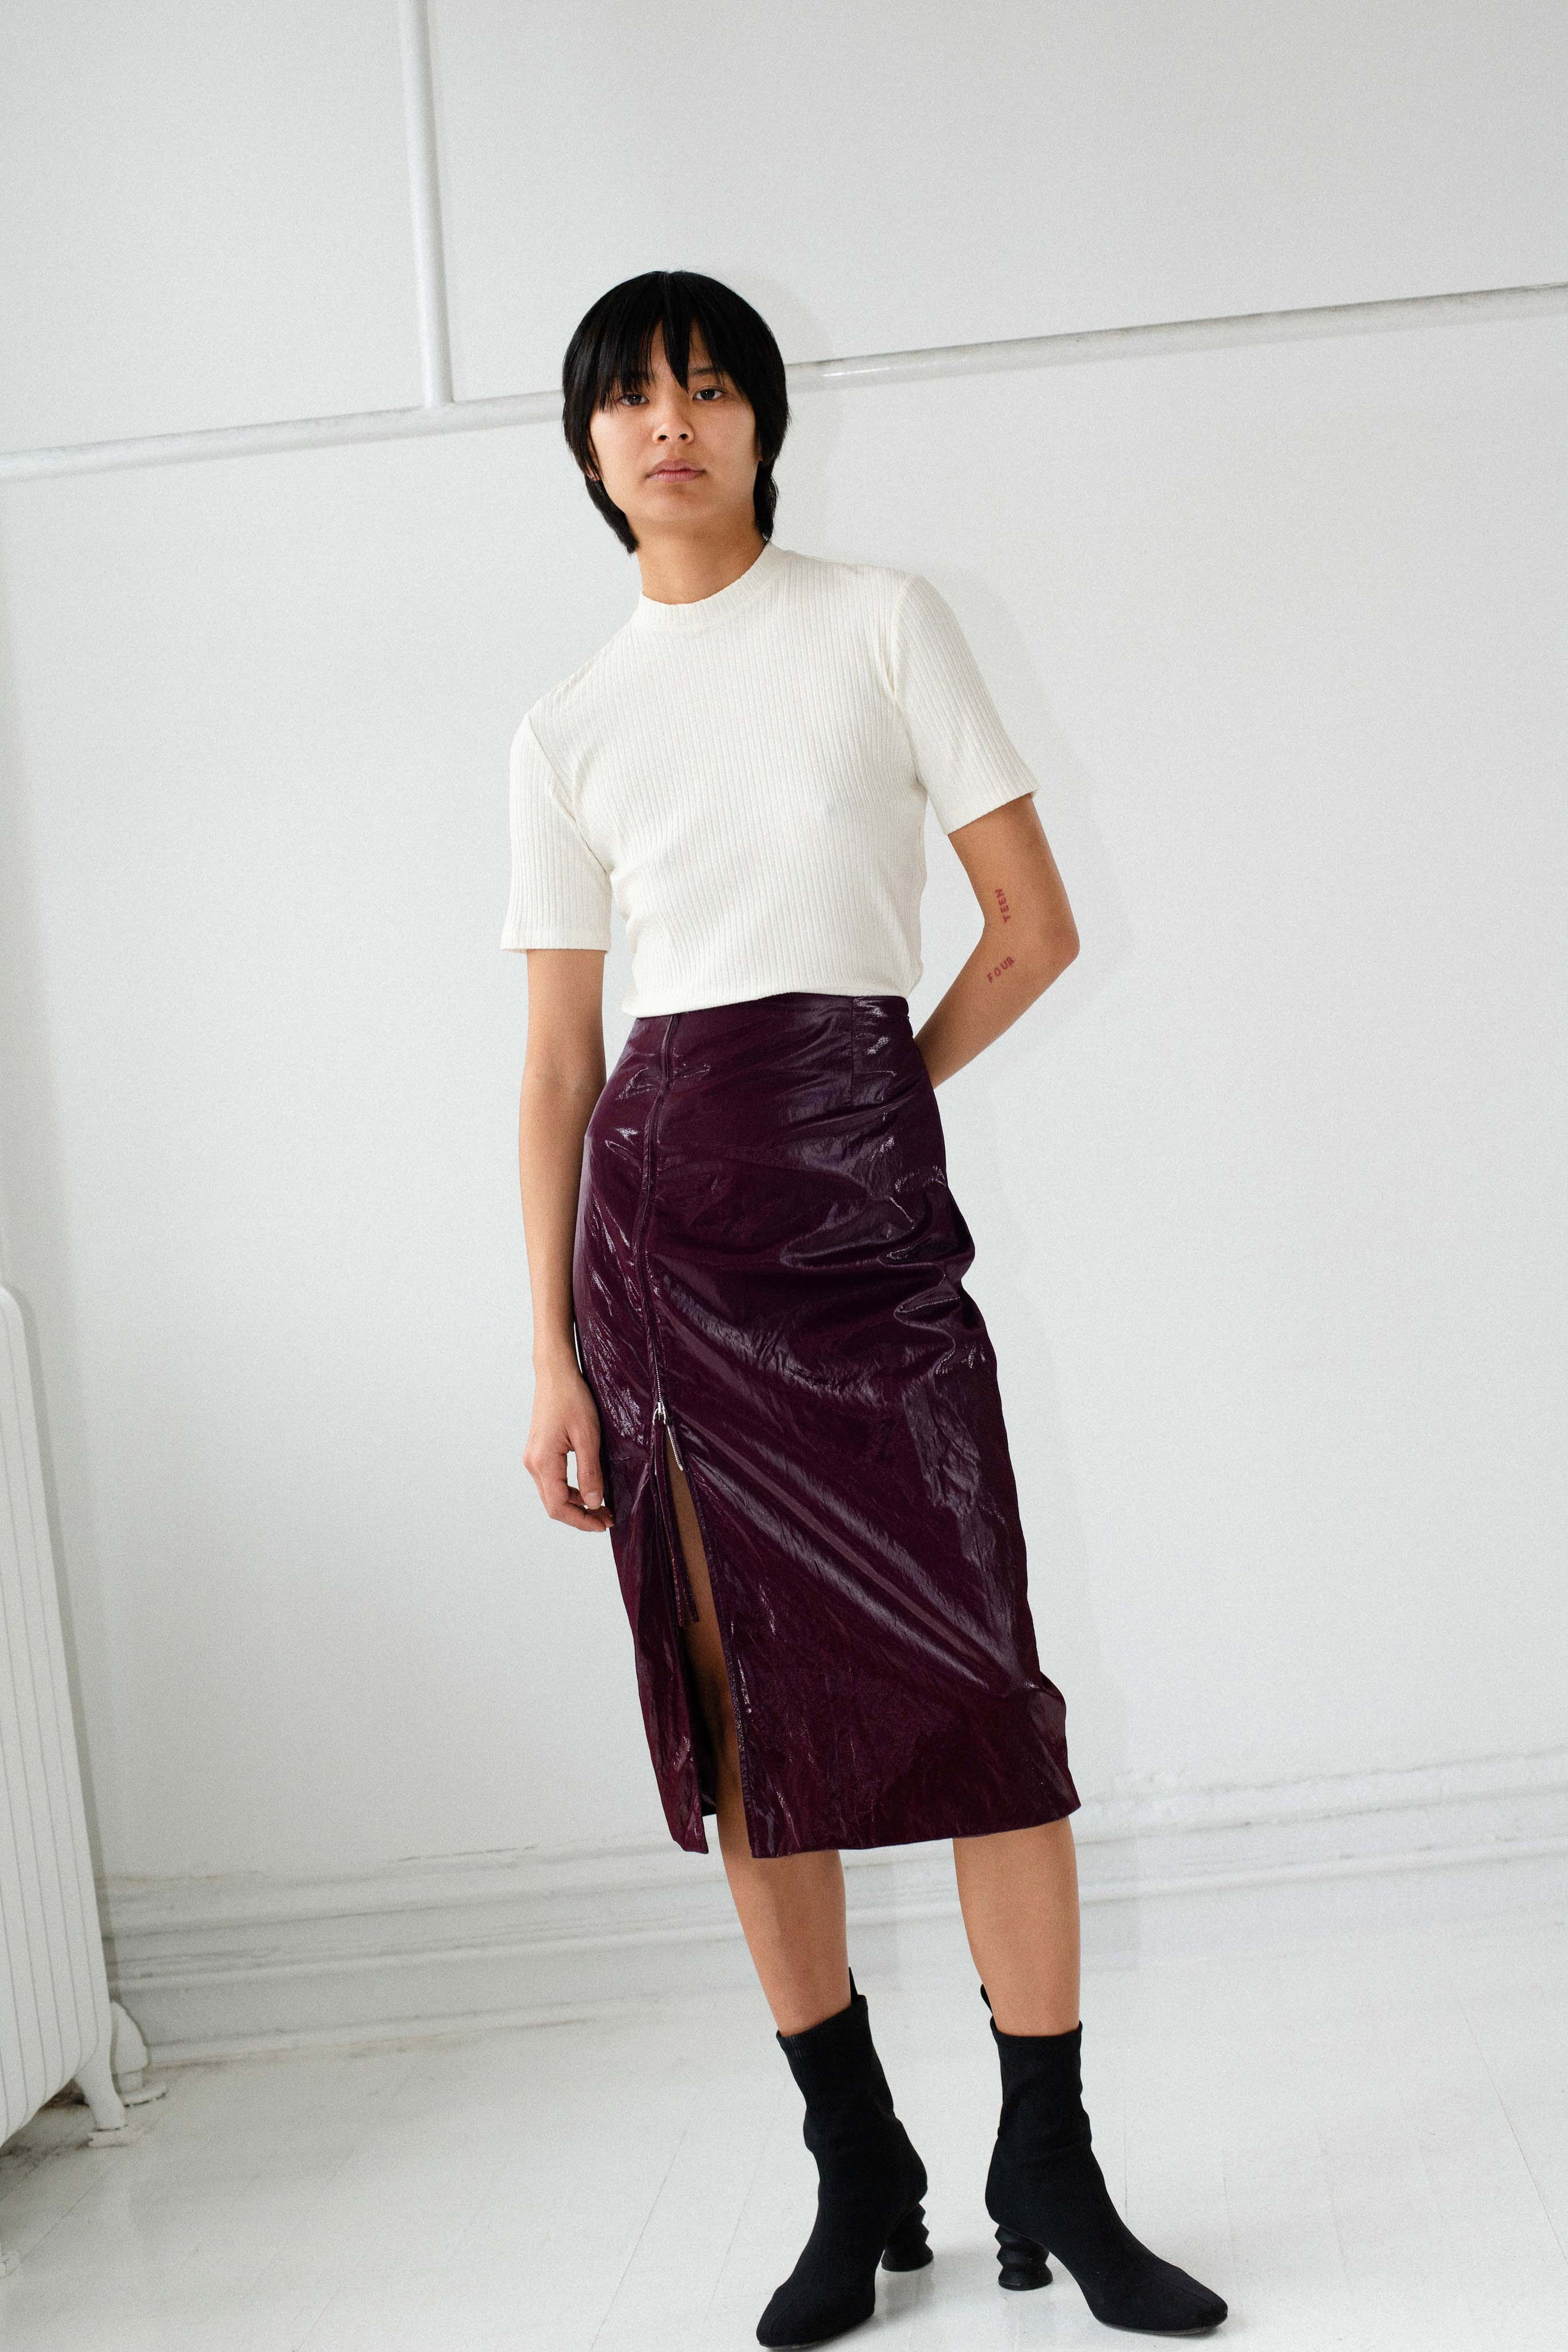 Nomia Pre fall 2020 Lookbook trends runway coverage Ready To Wear Vogue skirt with slit